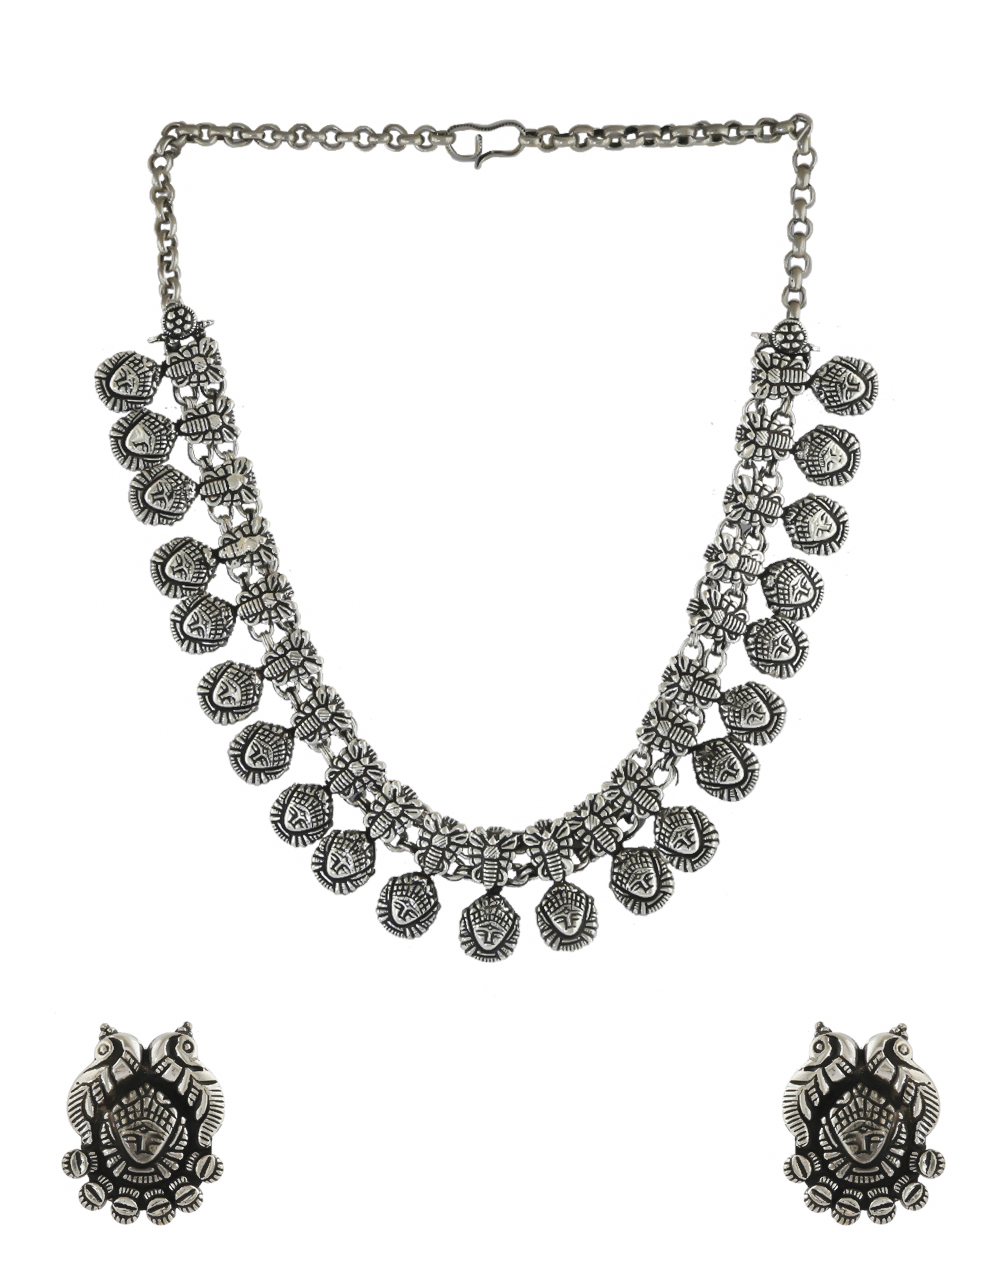 Fancy Oxidised Finish Chain Necklace Jewellery For Girls